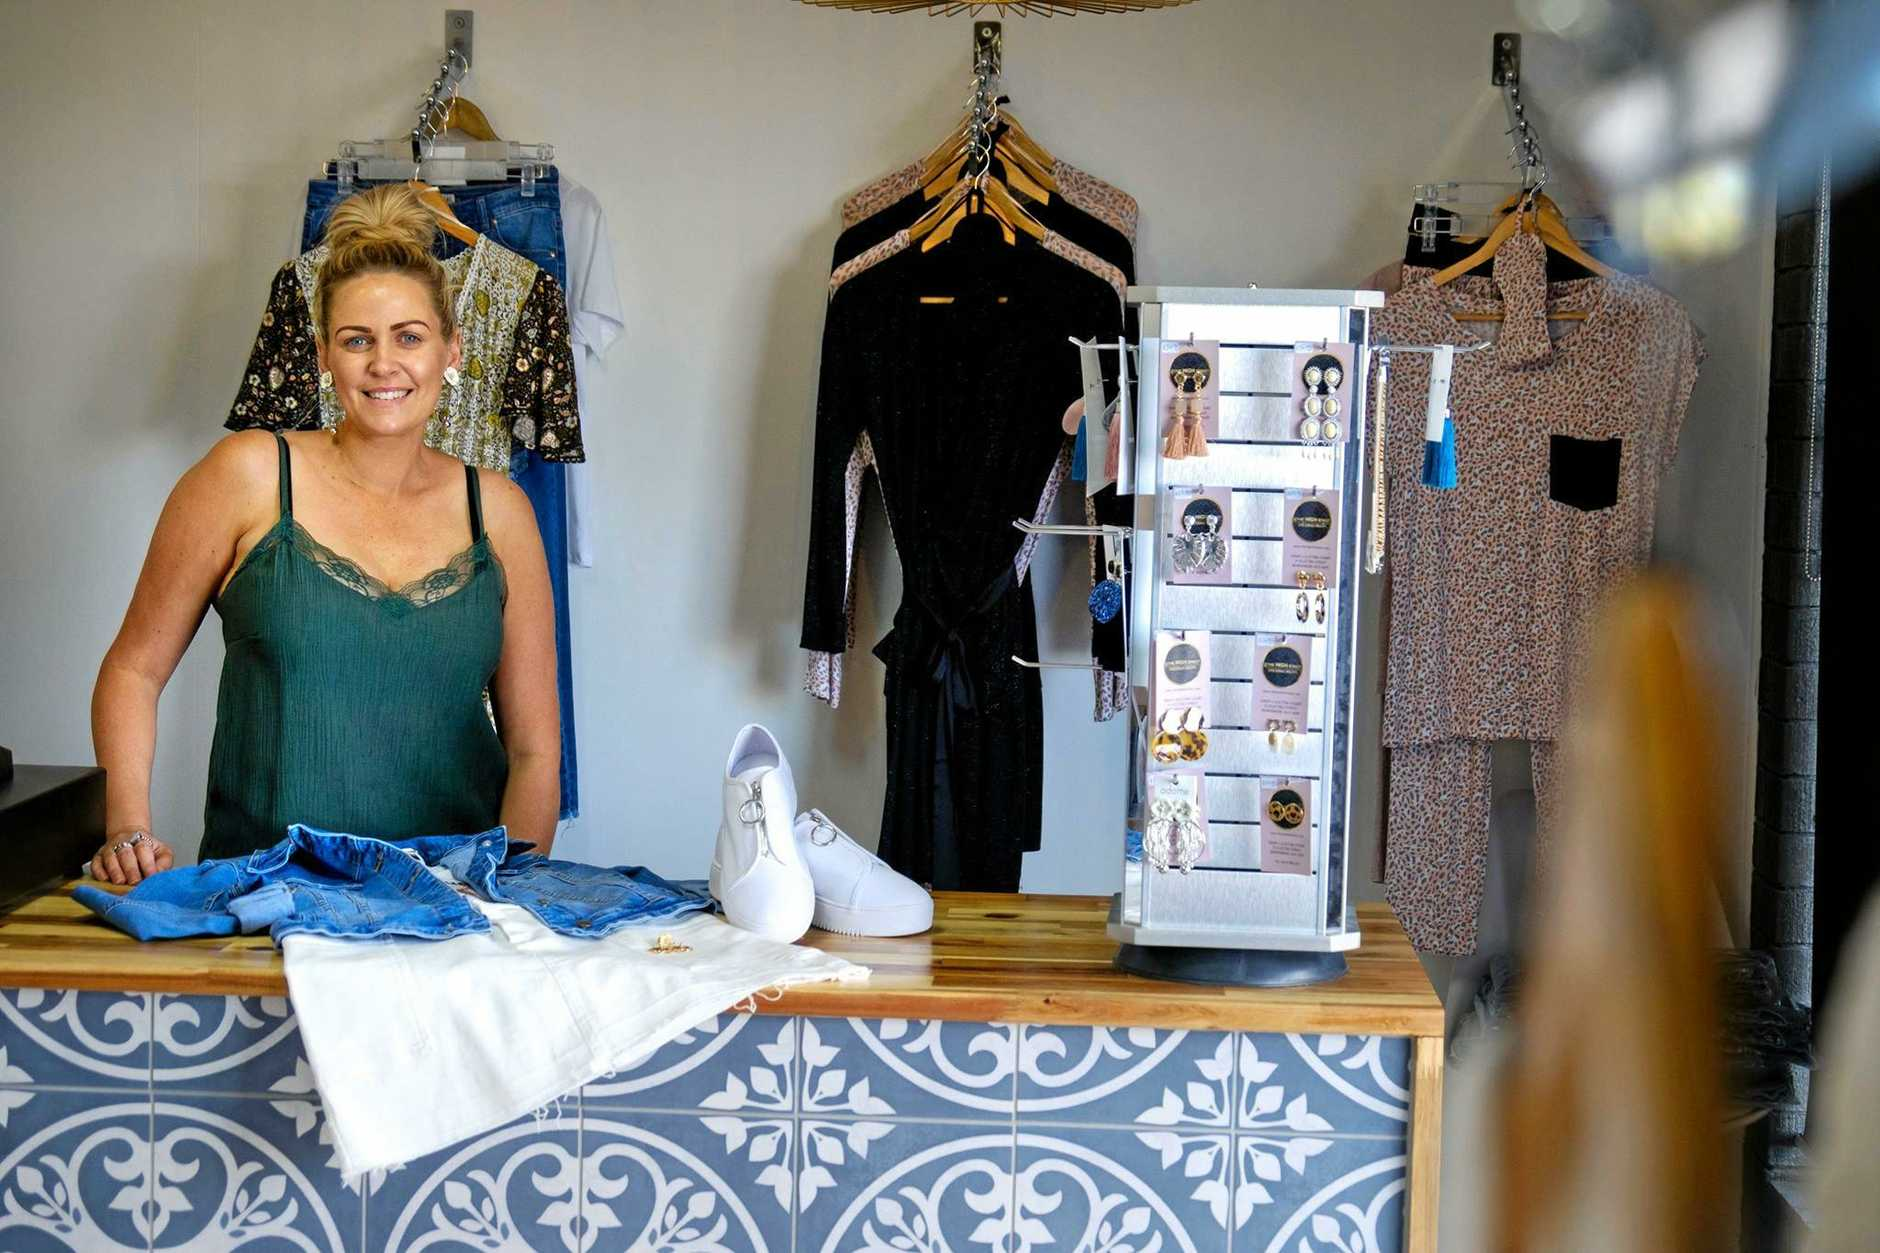 FASHION BARGAINS: The High Street Dressing Room owner Bree Kaufusi has capped her stock to $59.